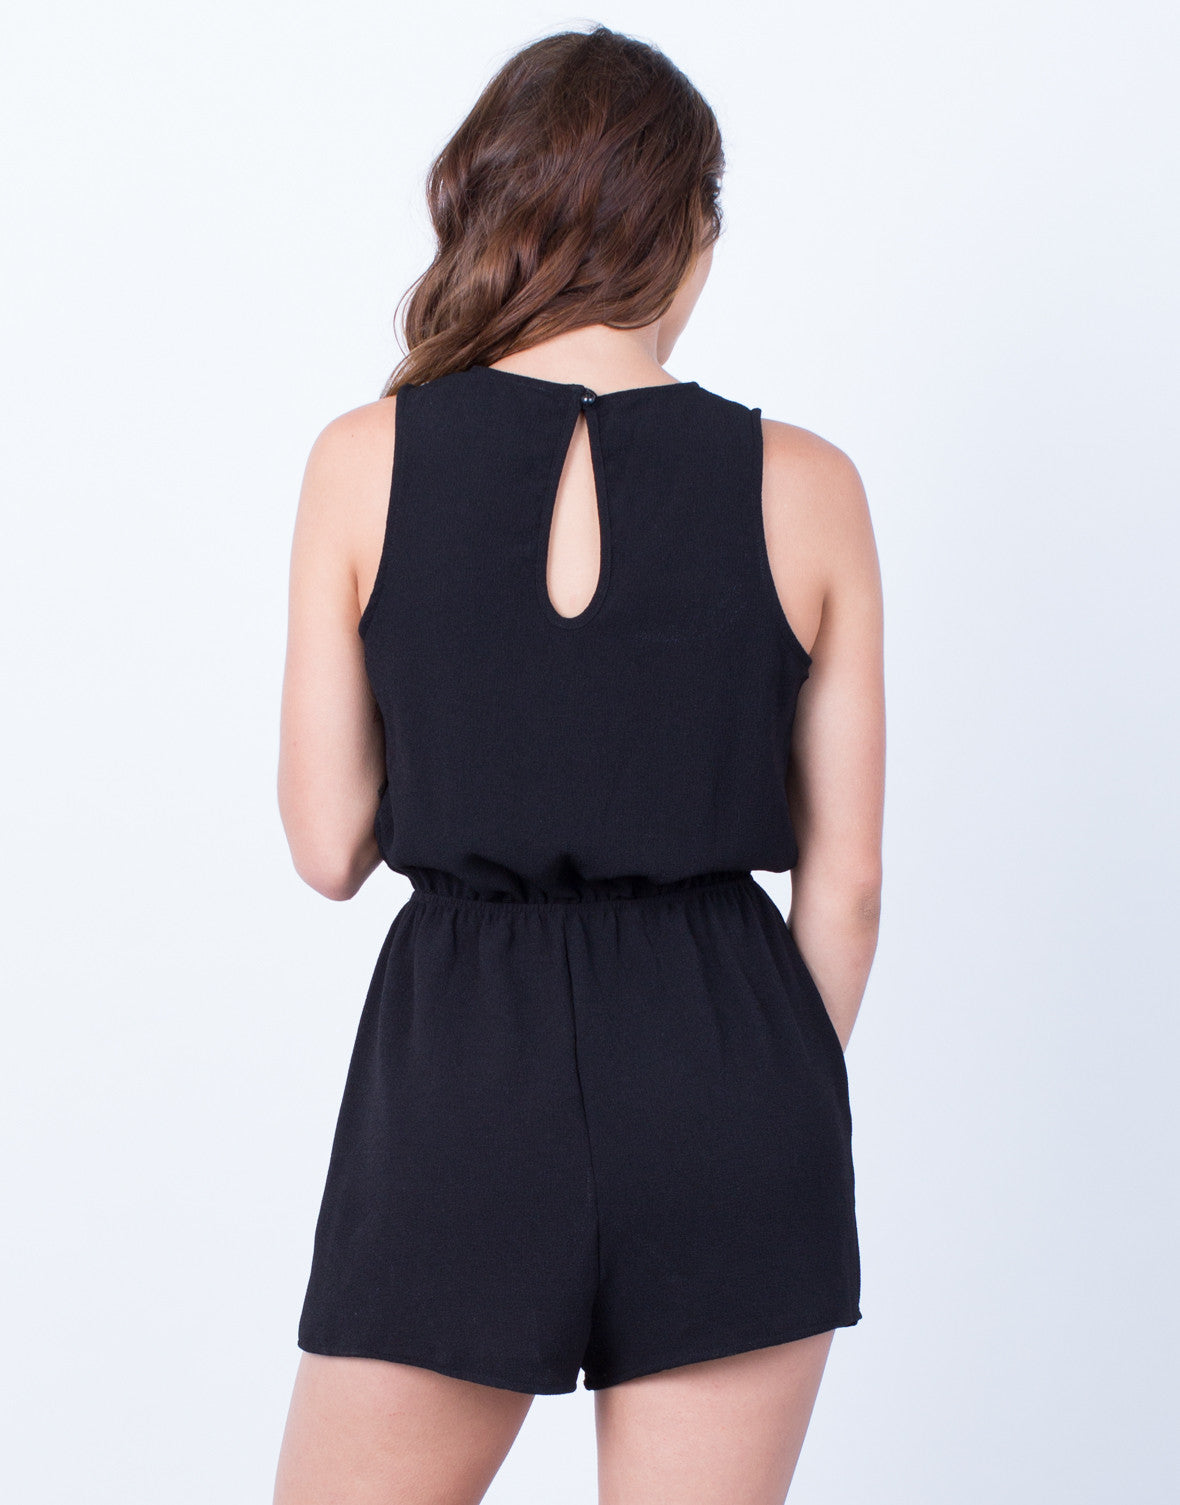 Back View of Full of Life Lace-Up Romper